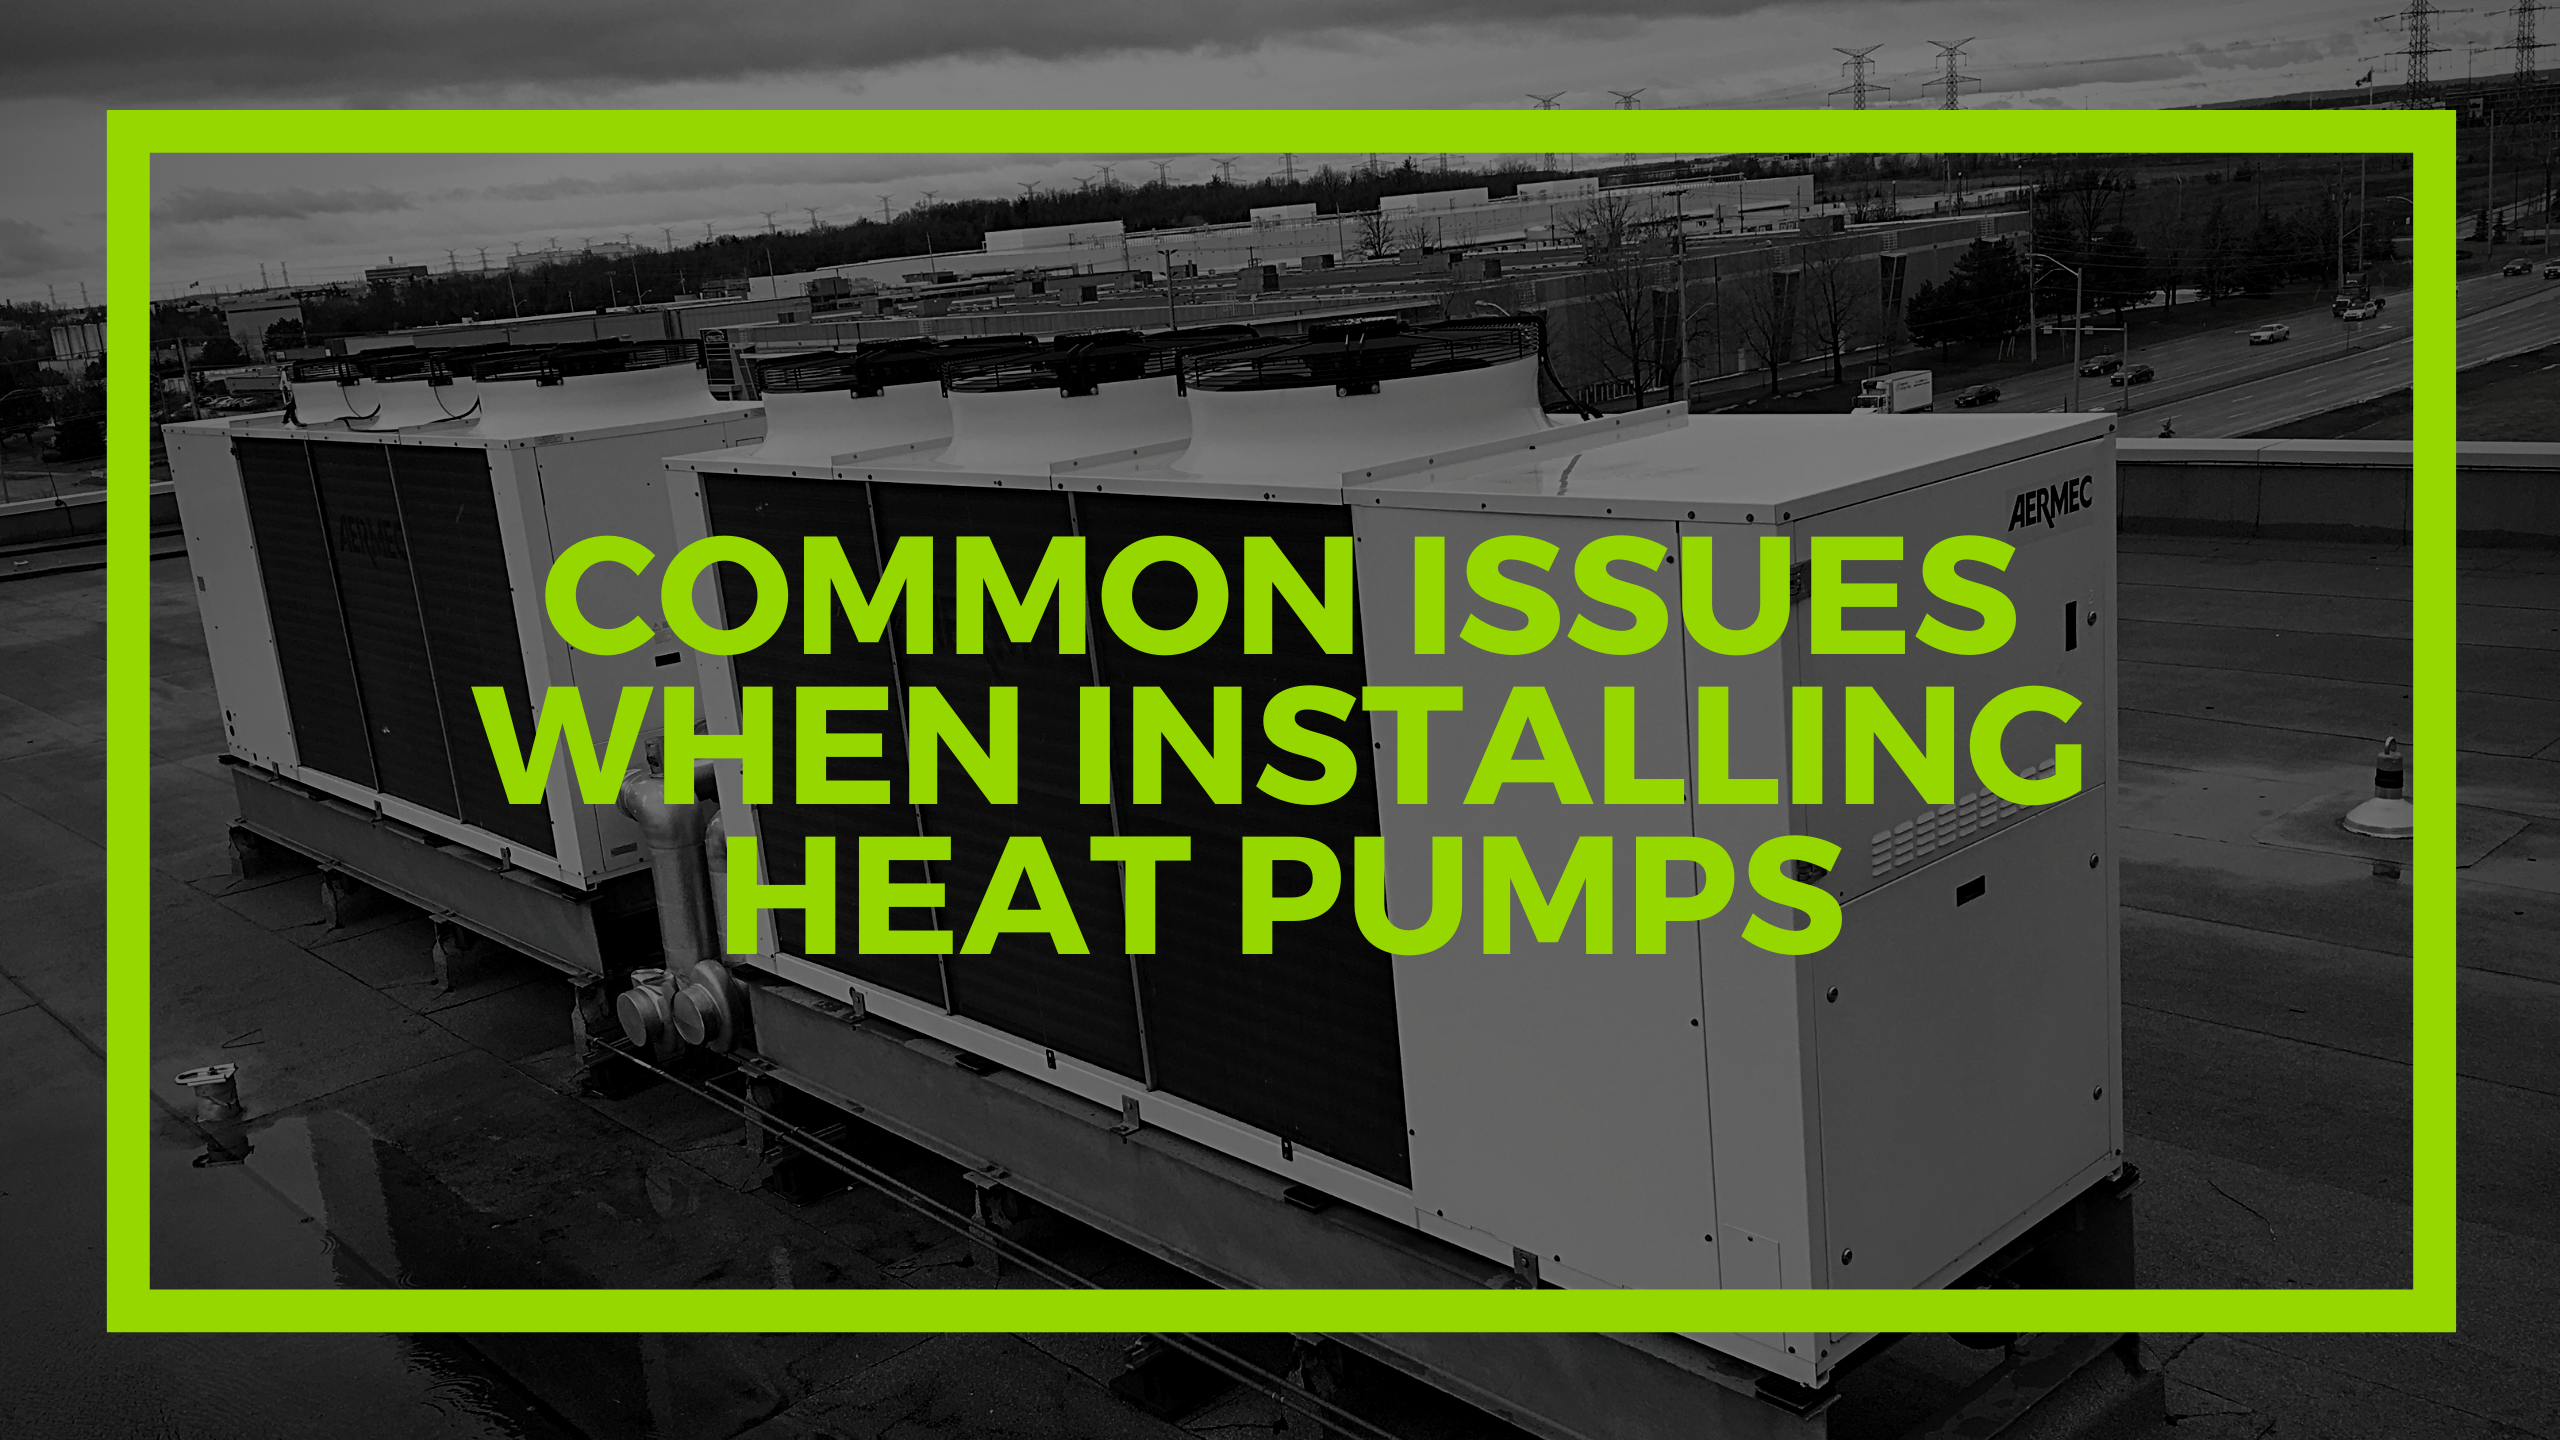 Common Issues When Installing Heat Pumps